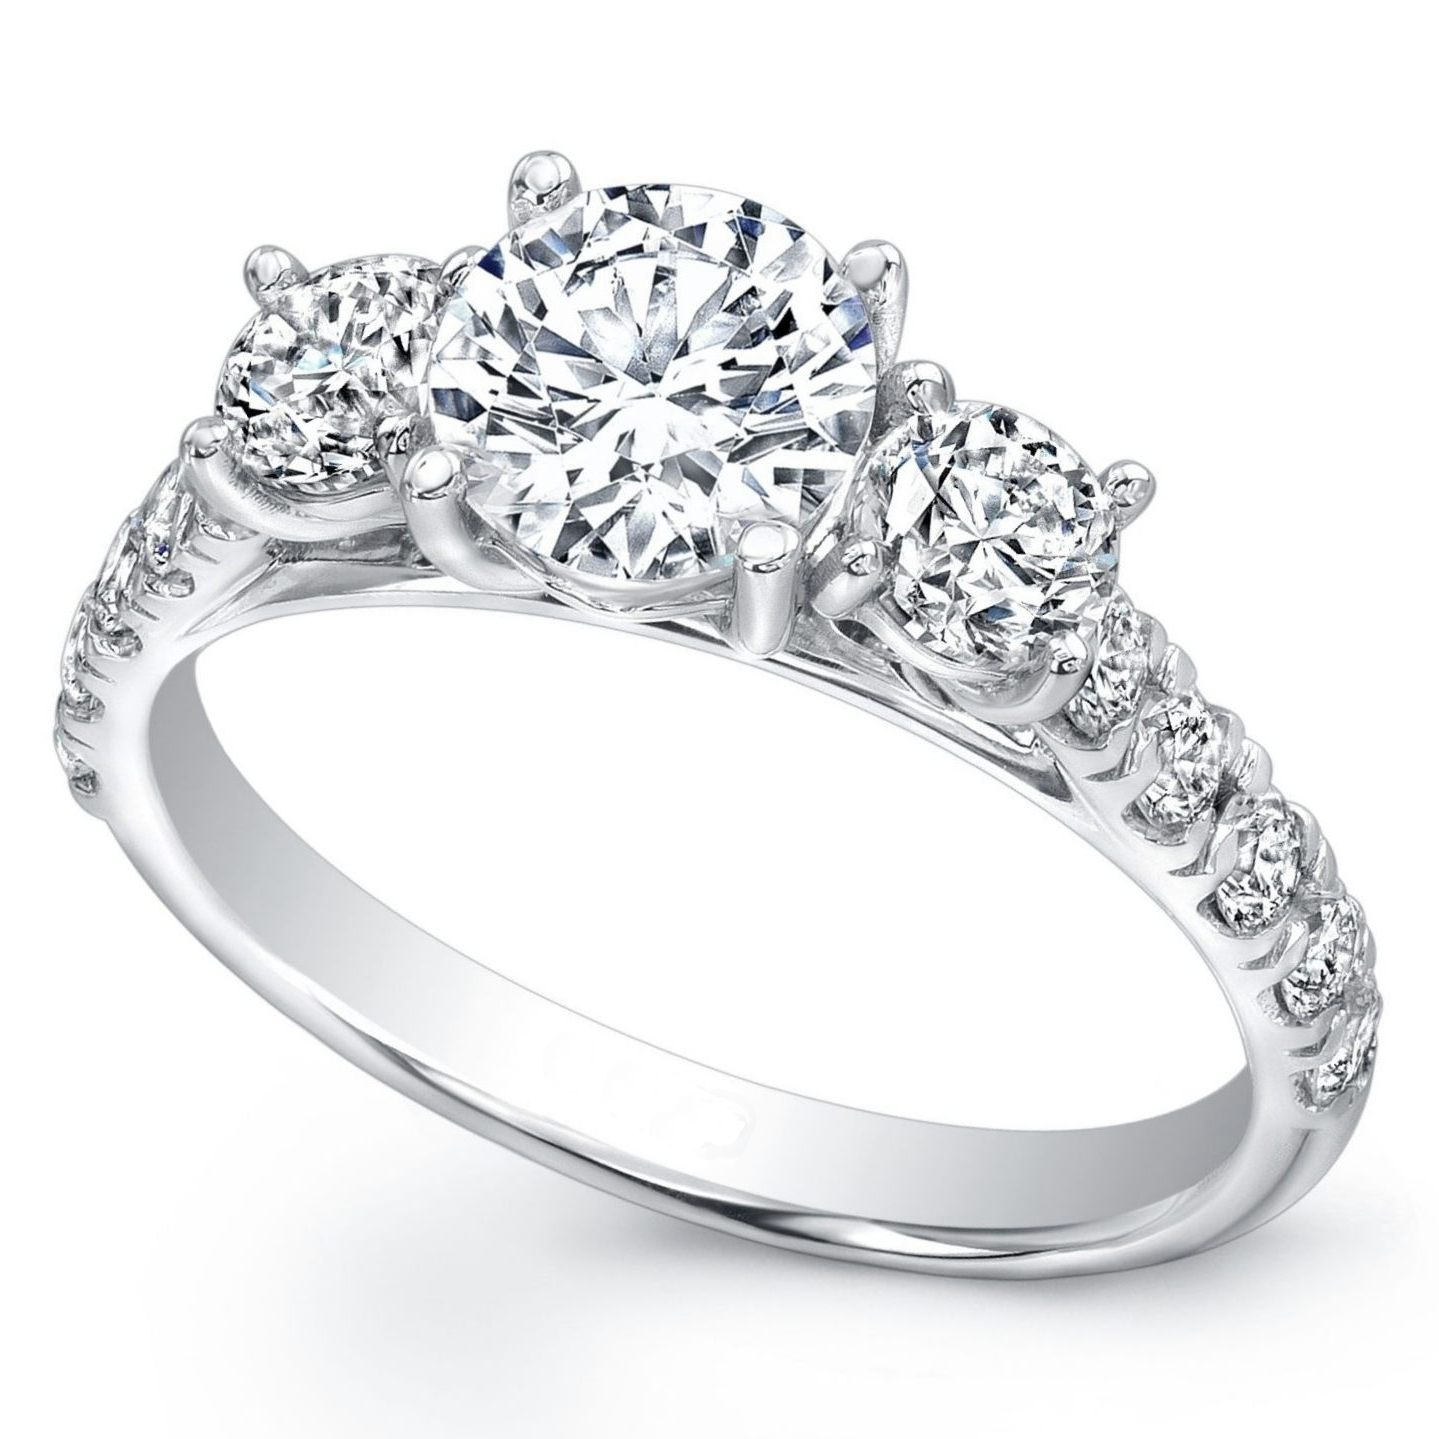 3 Stone Diamond Ring Perhanda Fasa